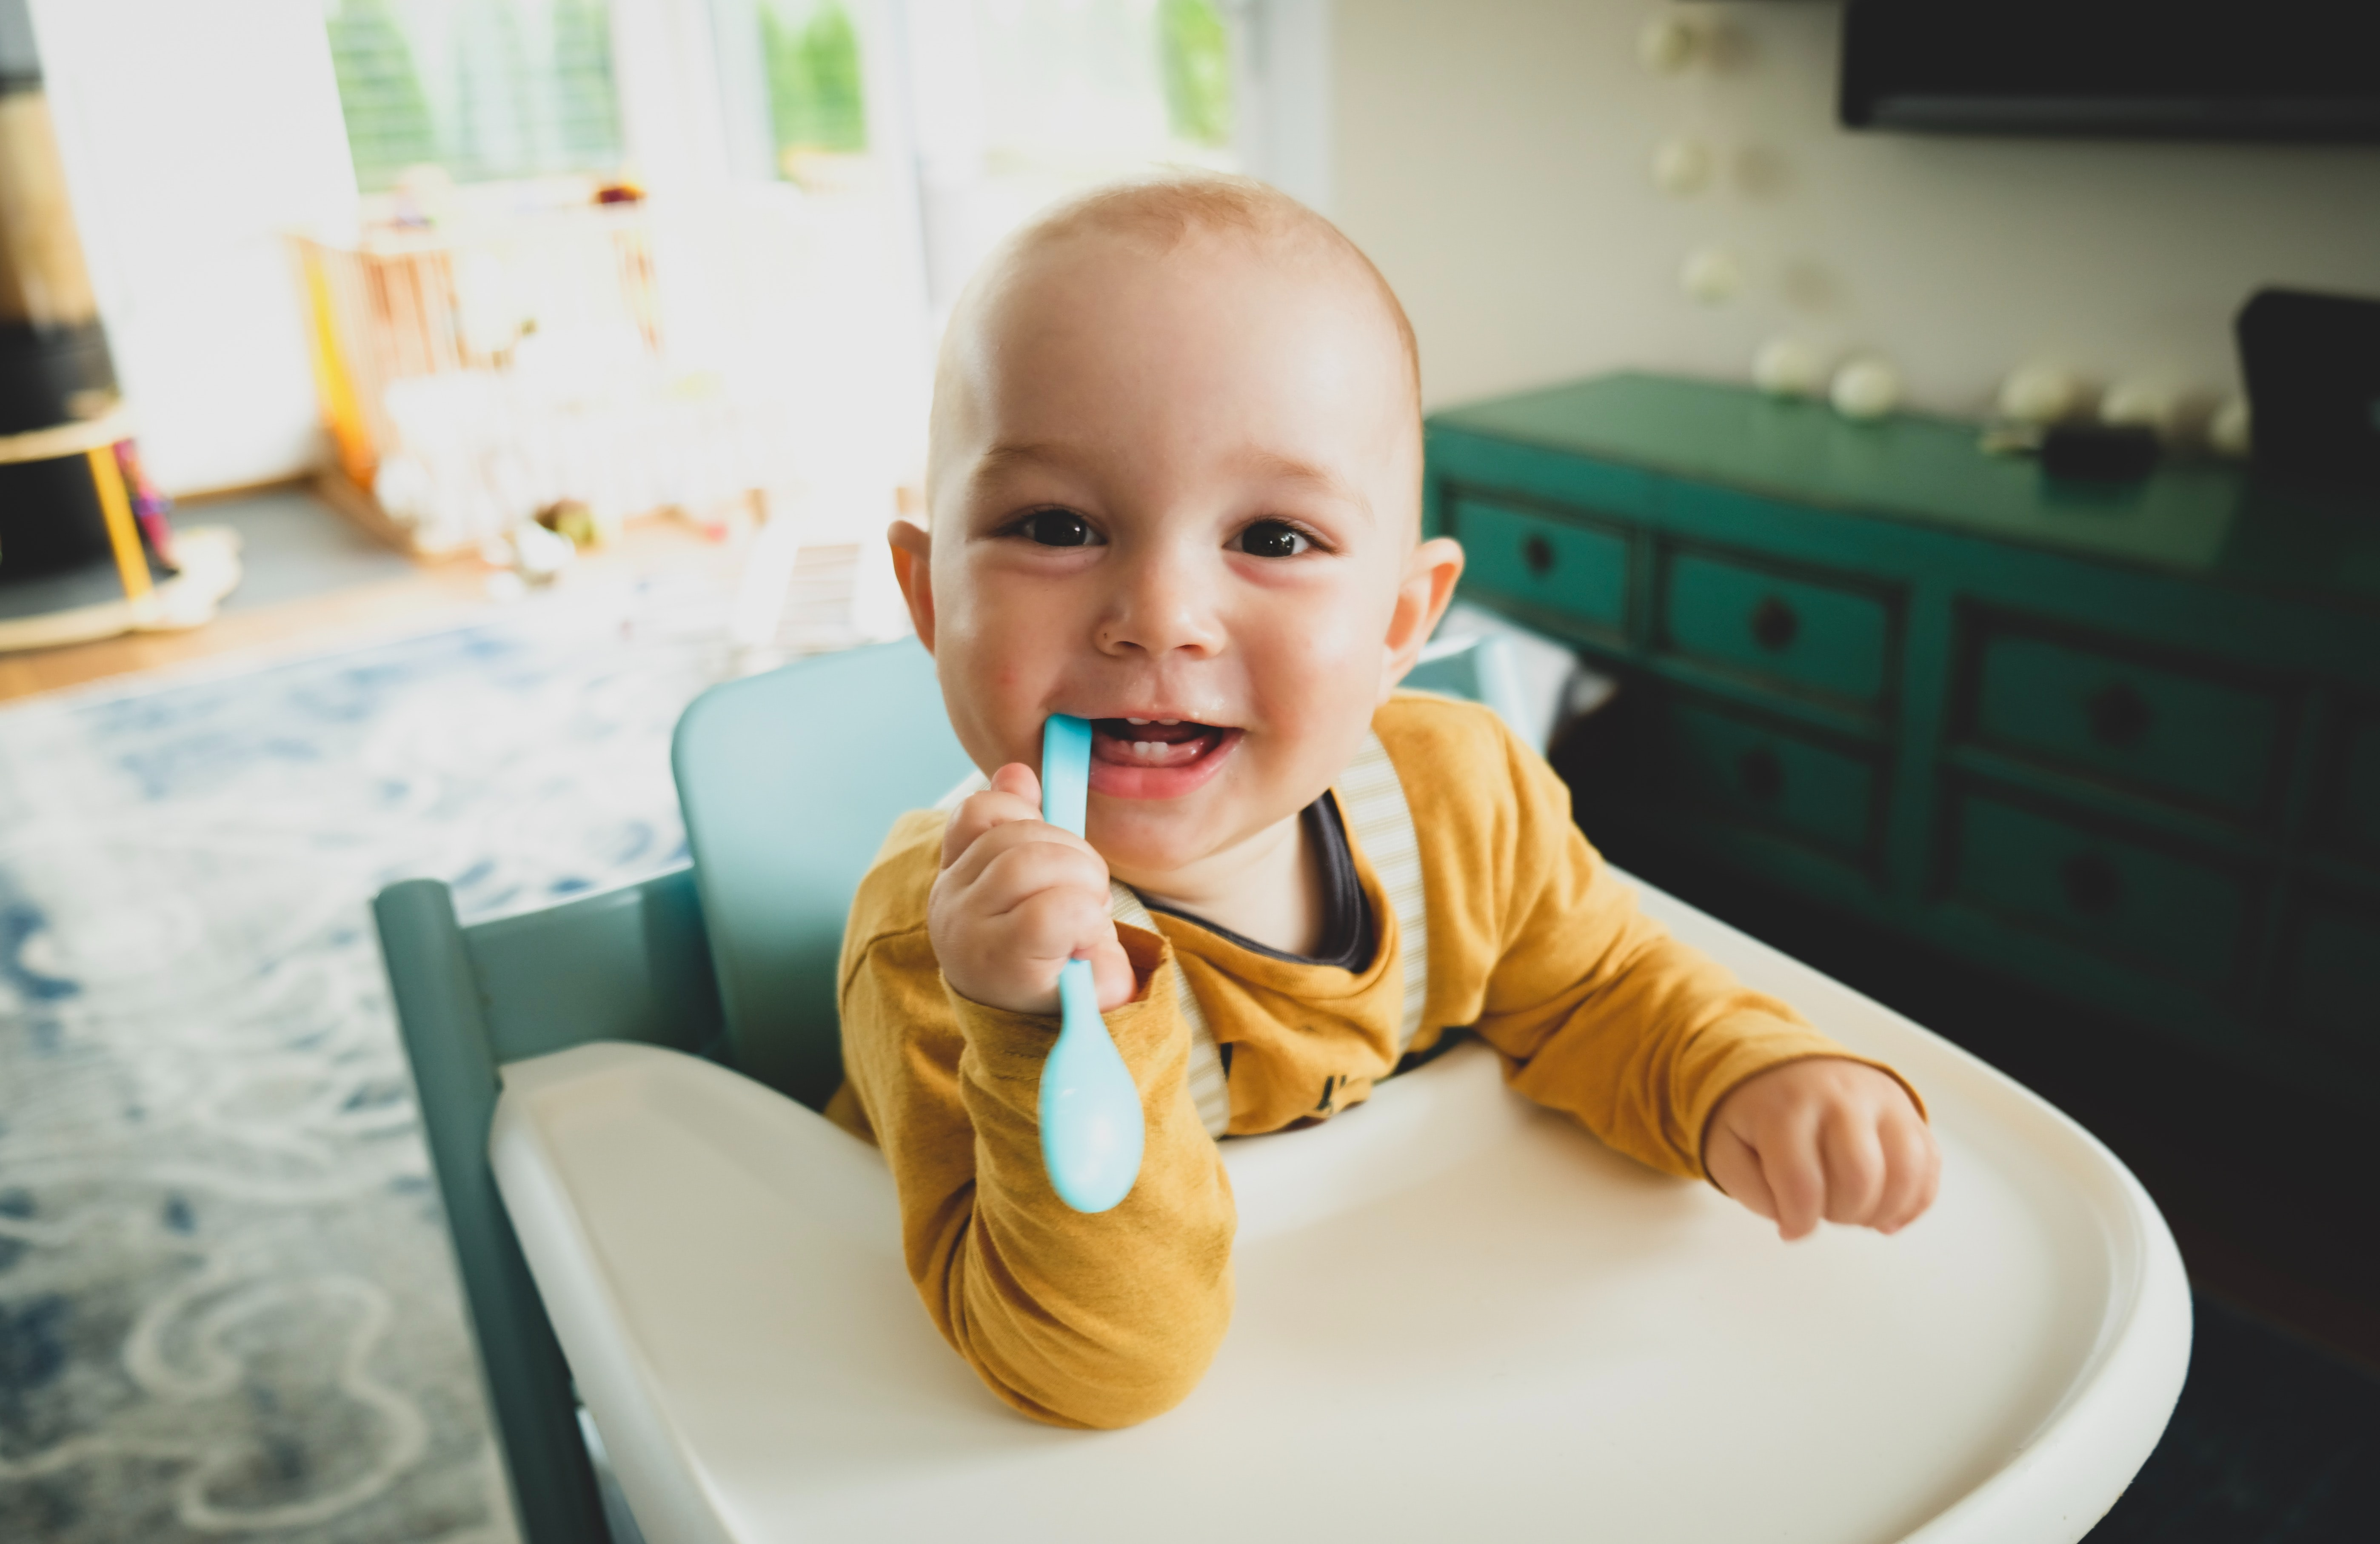 toddler sat in a high-chair smiling and biting on a plastic spoon